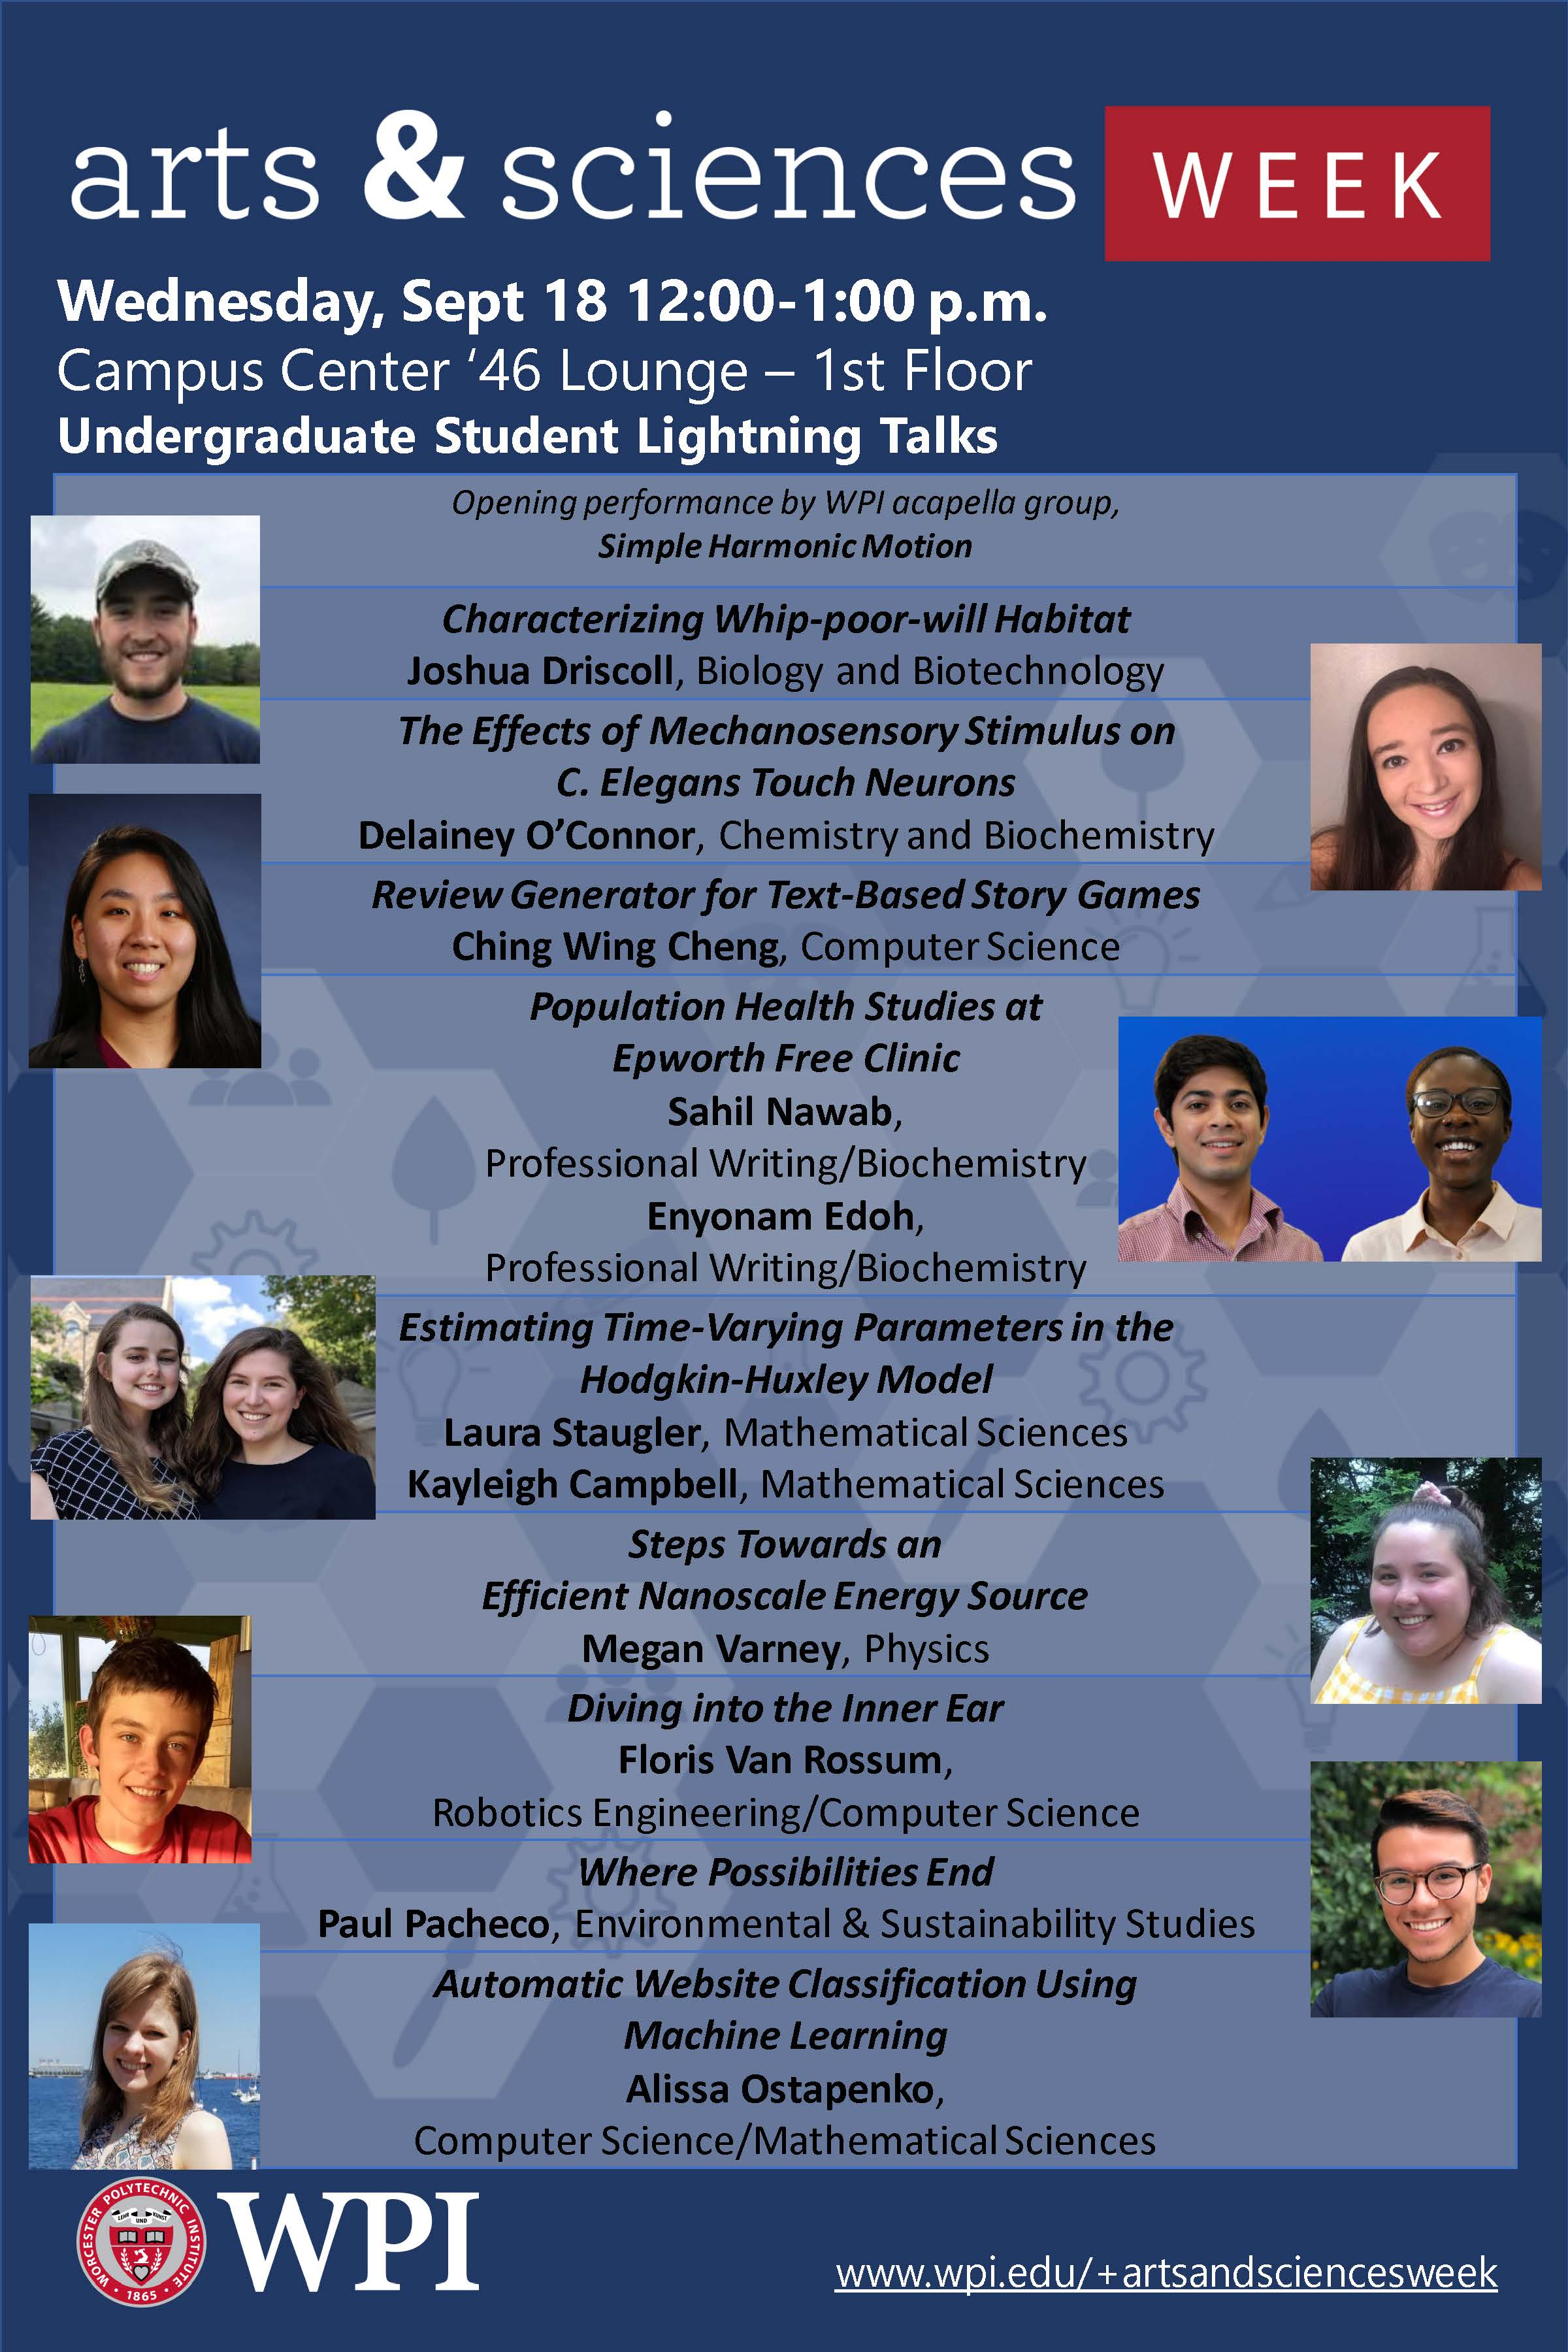 Undergraduate lightning talks